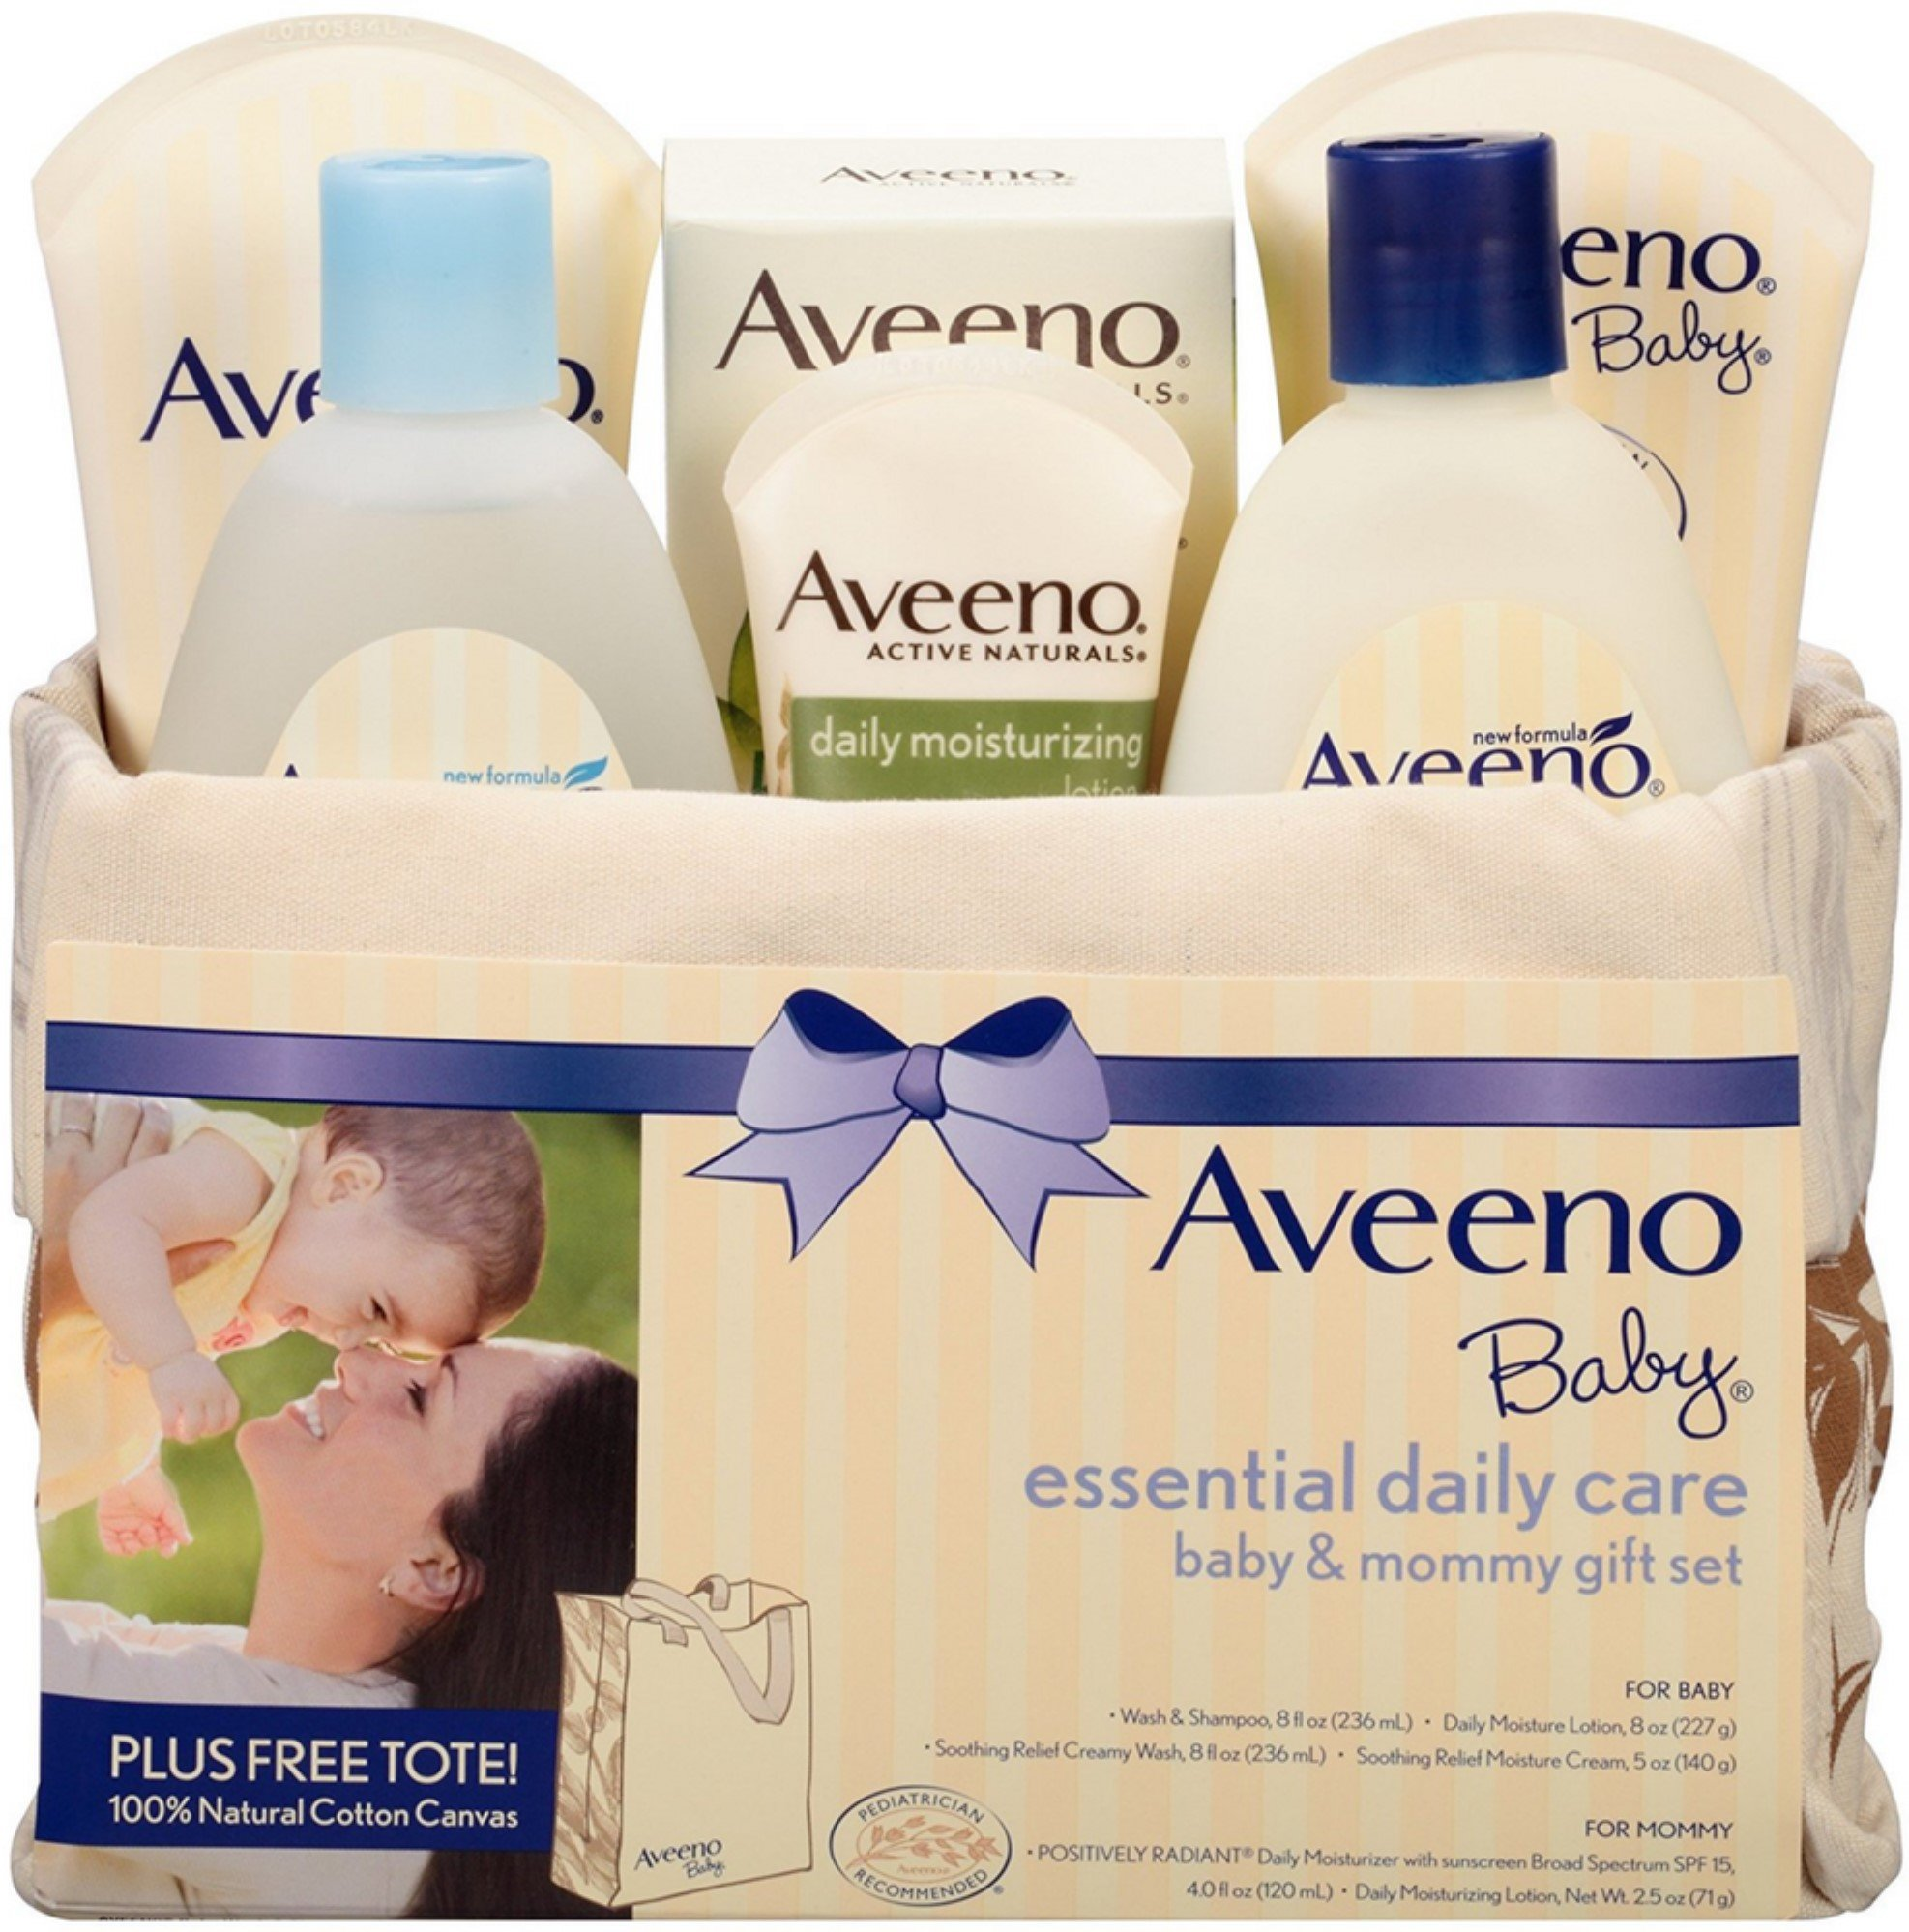 AVEENO Baby Essential Daily Care Baby & Mommy Gift Set 1 ea (6 Pack)